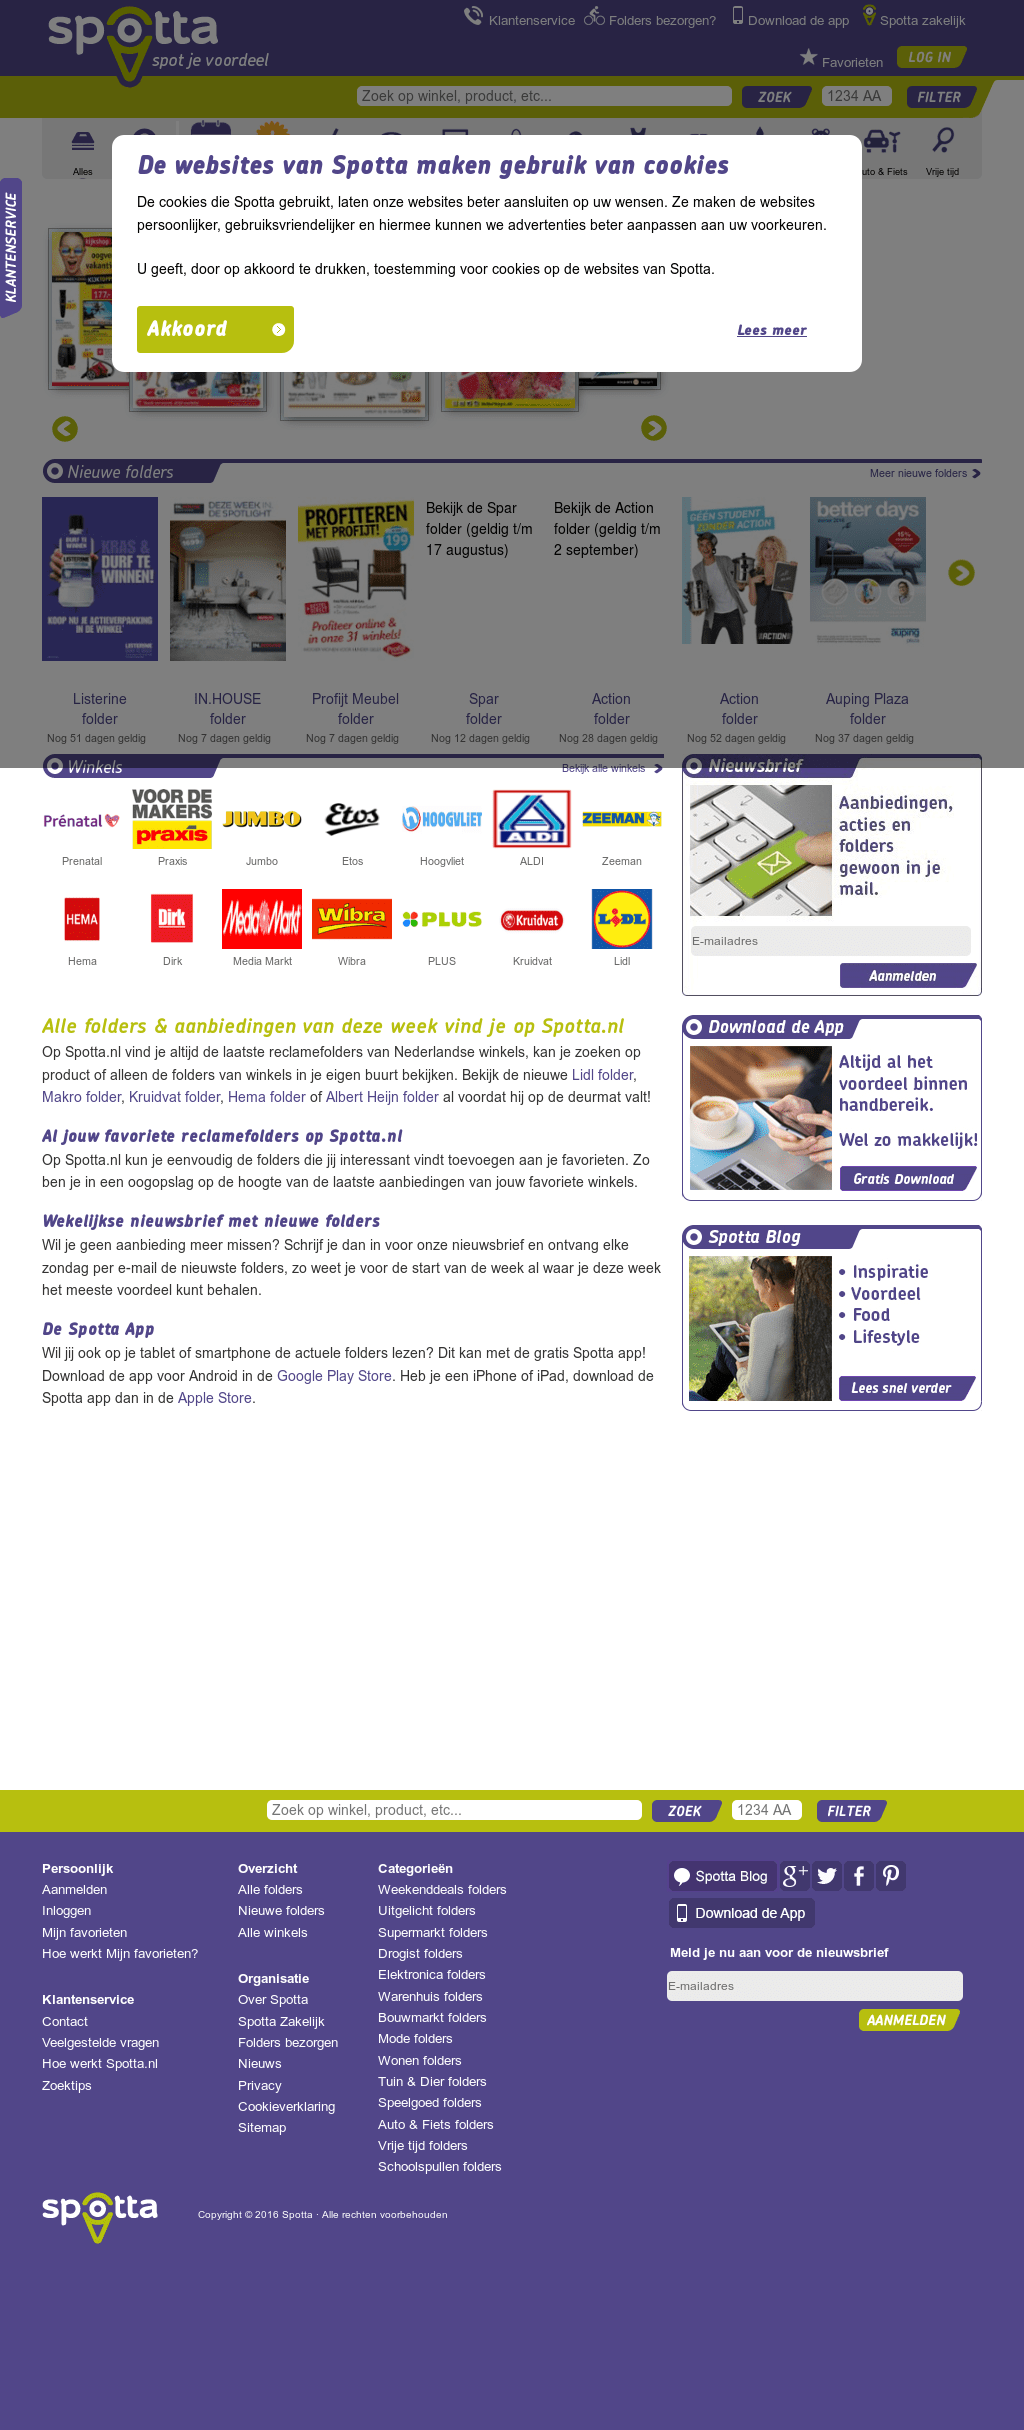 Action Folder Nl Kortingsbon Nl Competitors Revenue And Employees Owler Company